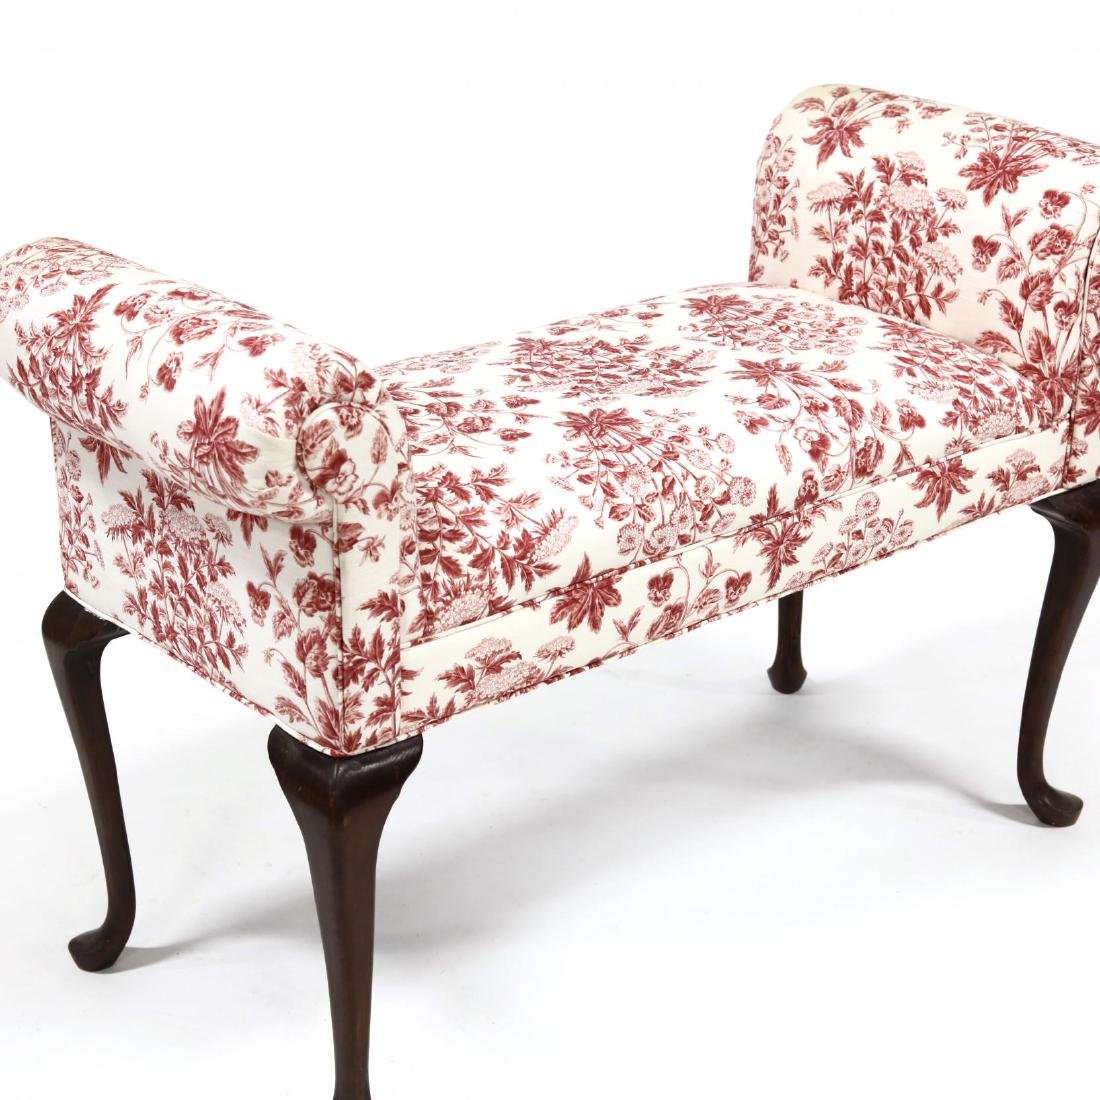 Queen Anne Style Over Upholstered Bench - 2